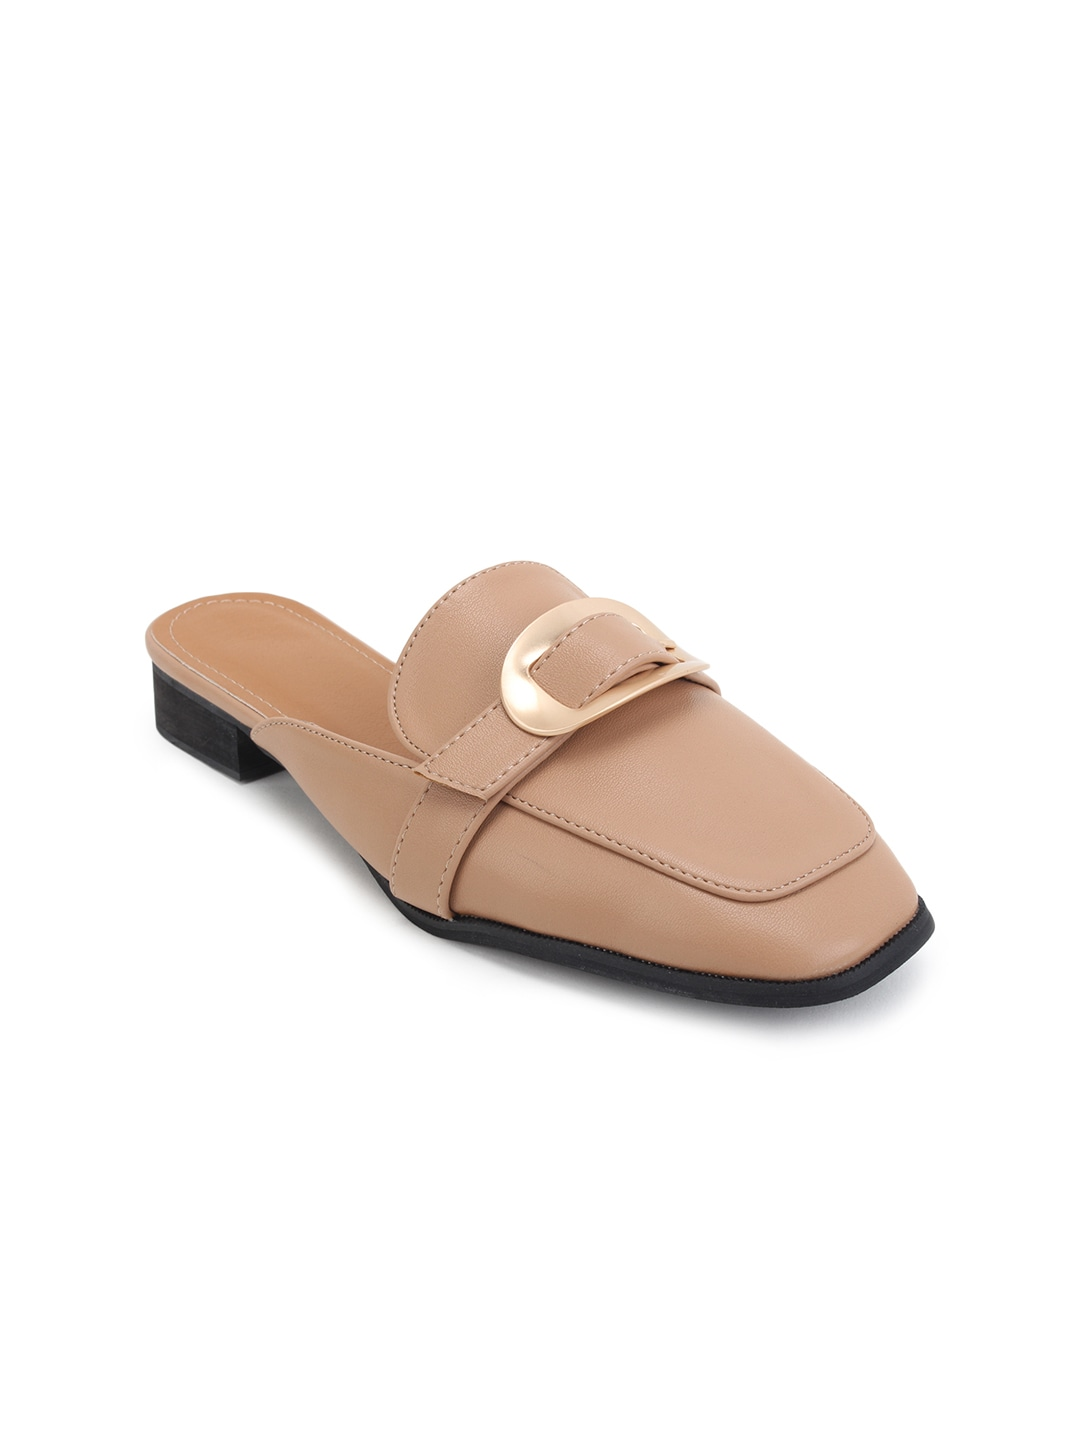 Beige Solid Synthetic Mules